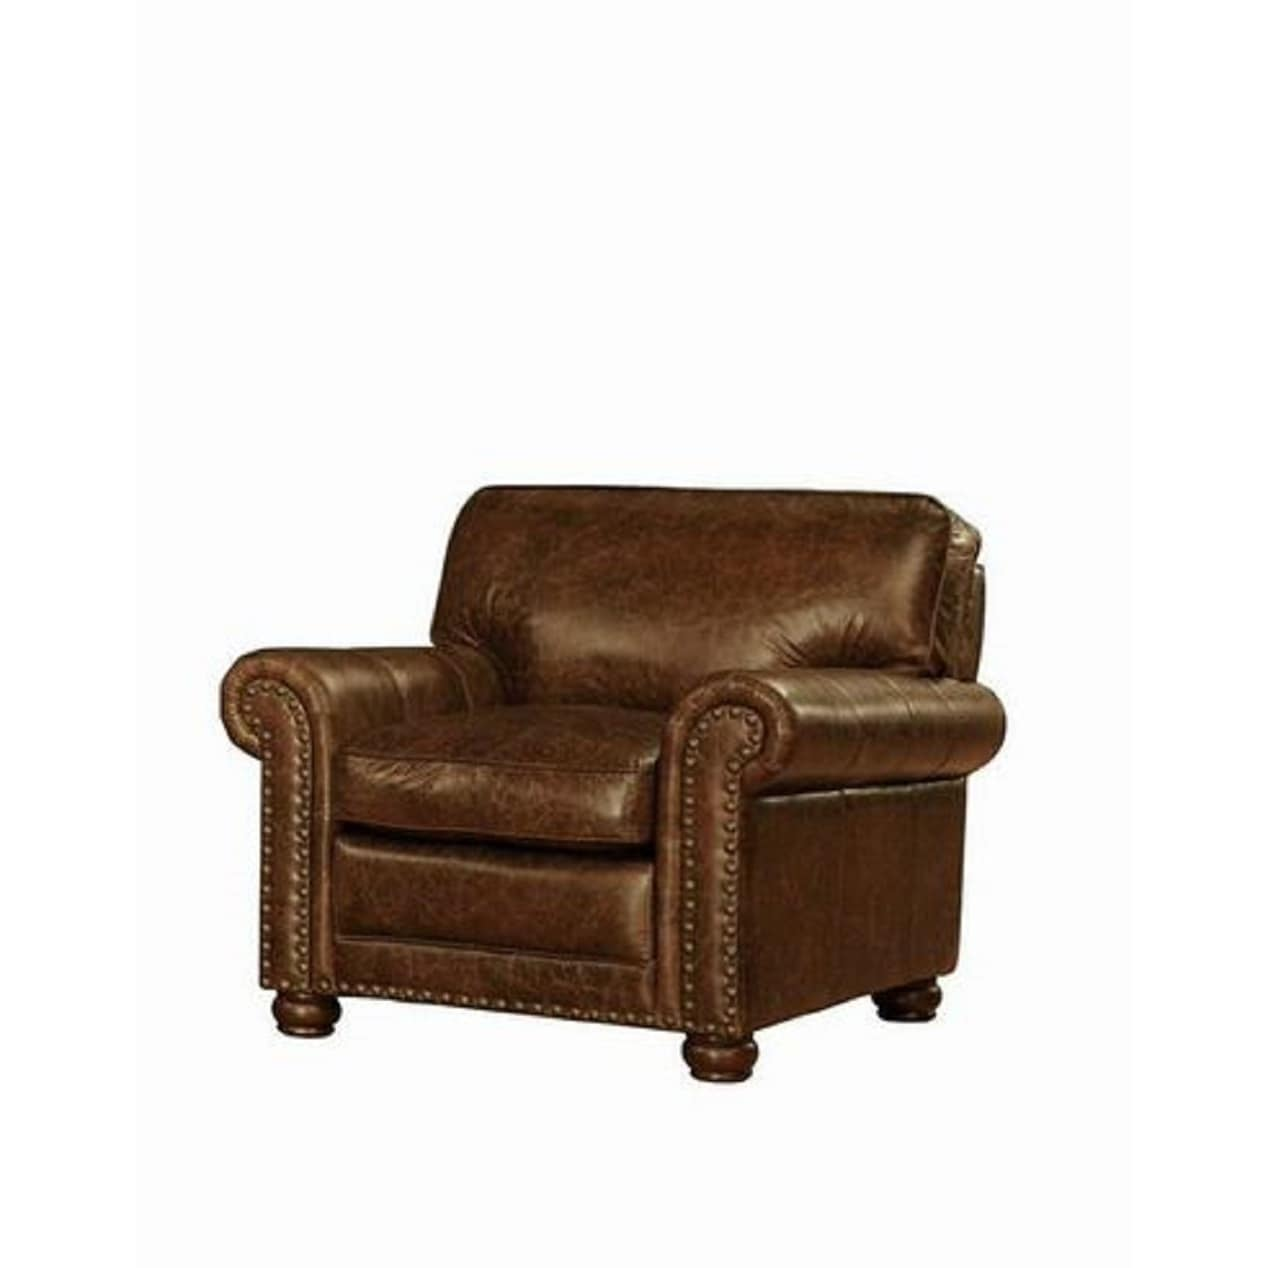 Genesis Leather Chair By Lazzaro Leather, Brown (Fabric)